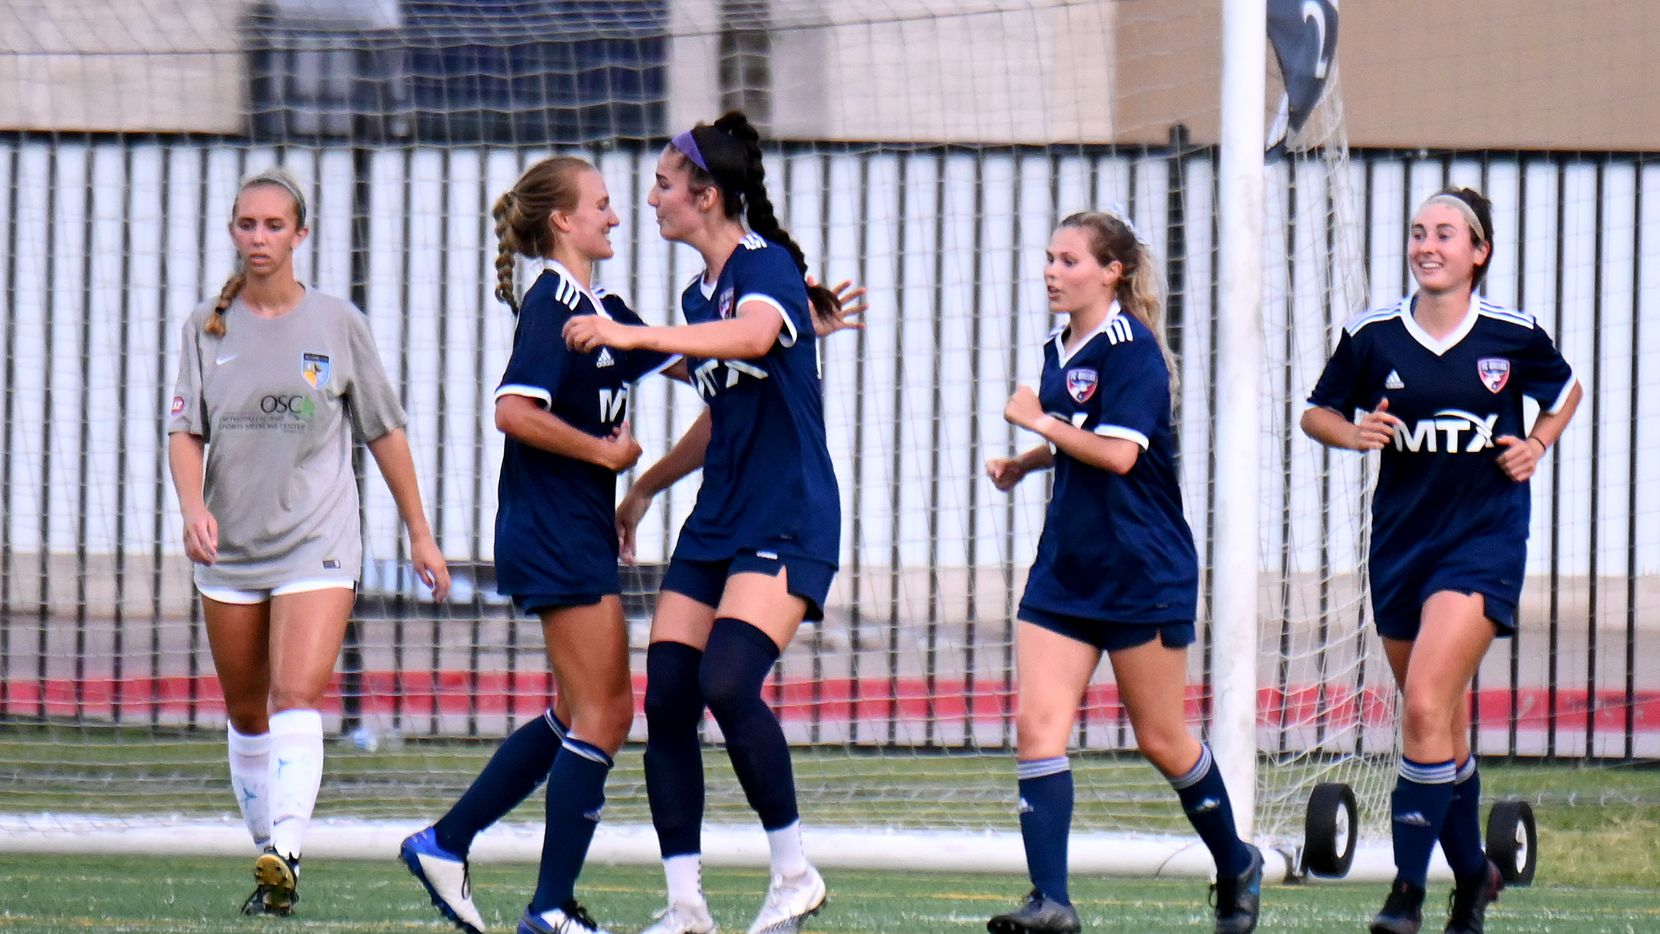 FC Dallas Diana Ordonez, second from left, celebrates her second half goal with during a WPSL game between Oklahoma City FC and FC Dallas, Tuesday, June 30, 2021, in Frisco, Texas. (Matt Strasen/Special Contributor)